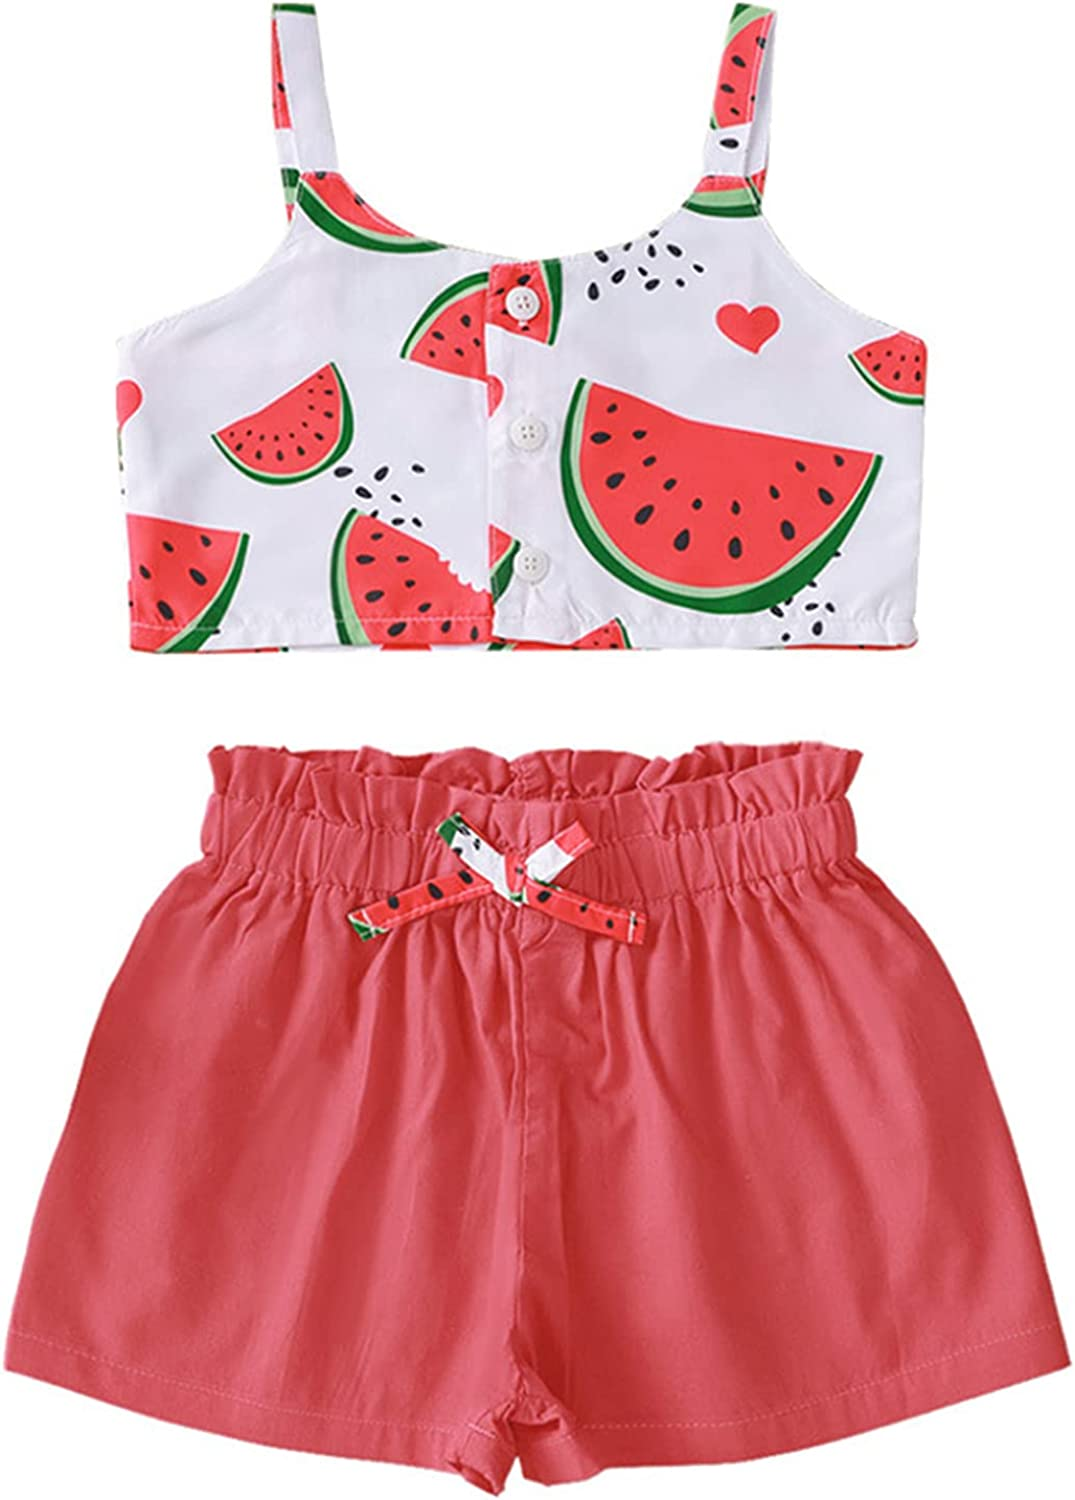 WINZIK Max 59% OFF Toddler Kid Baby Girl Summer Of Ruffle Clothes Set Outfit Trust